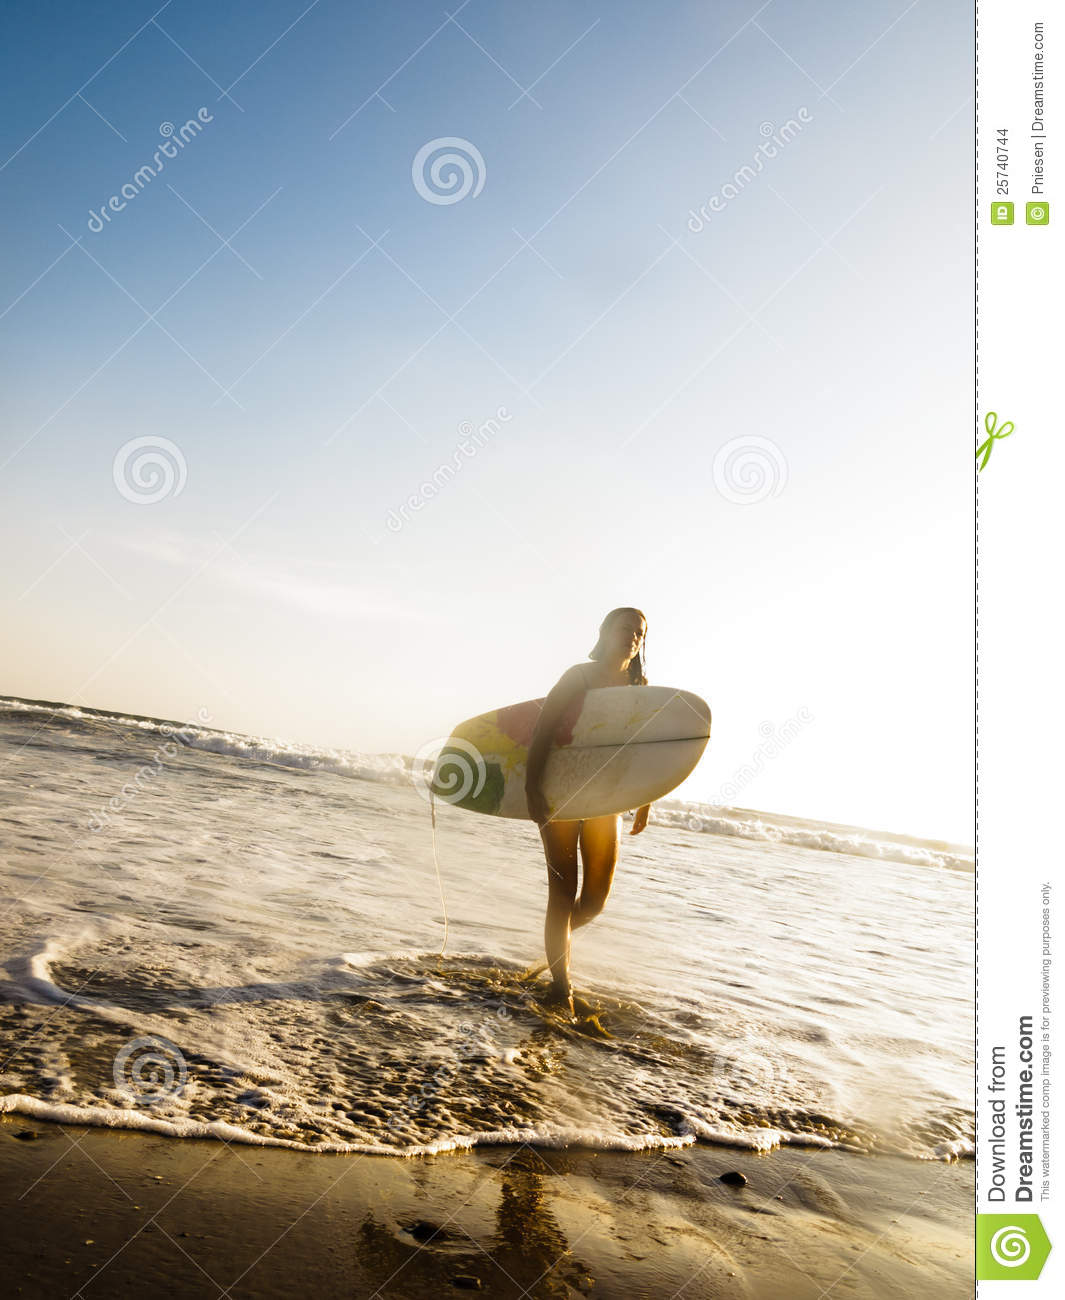 Female surfer with surf board walking on beach